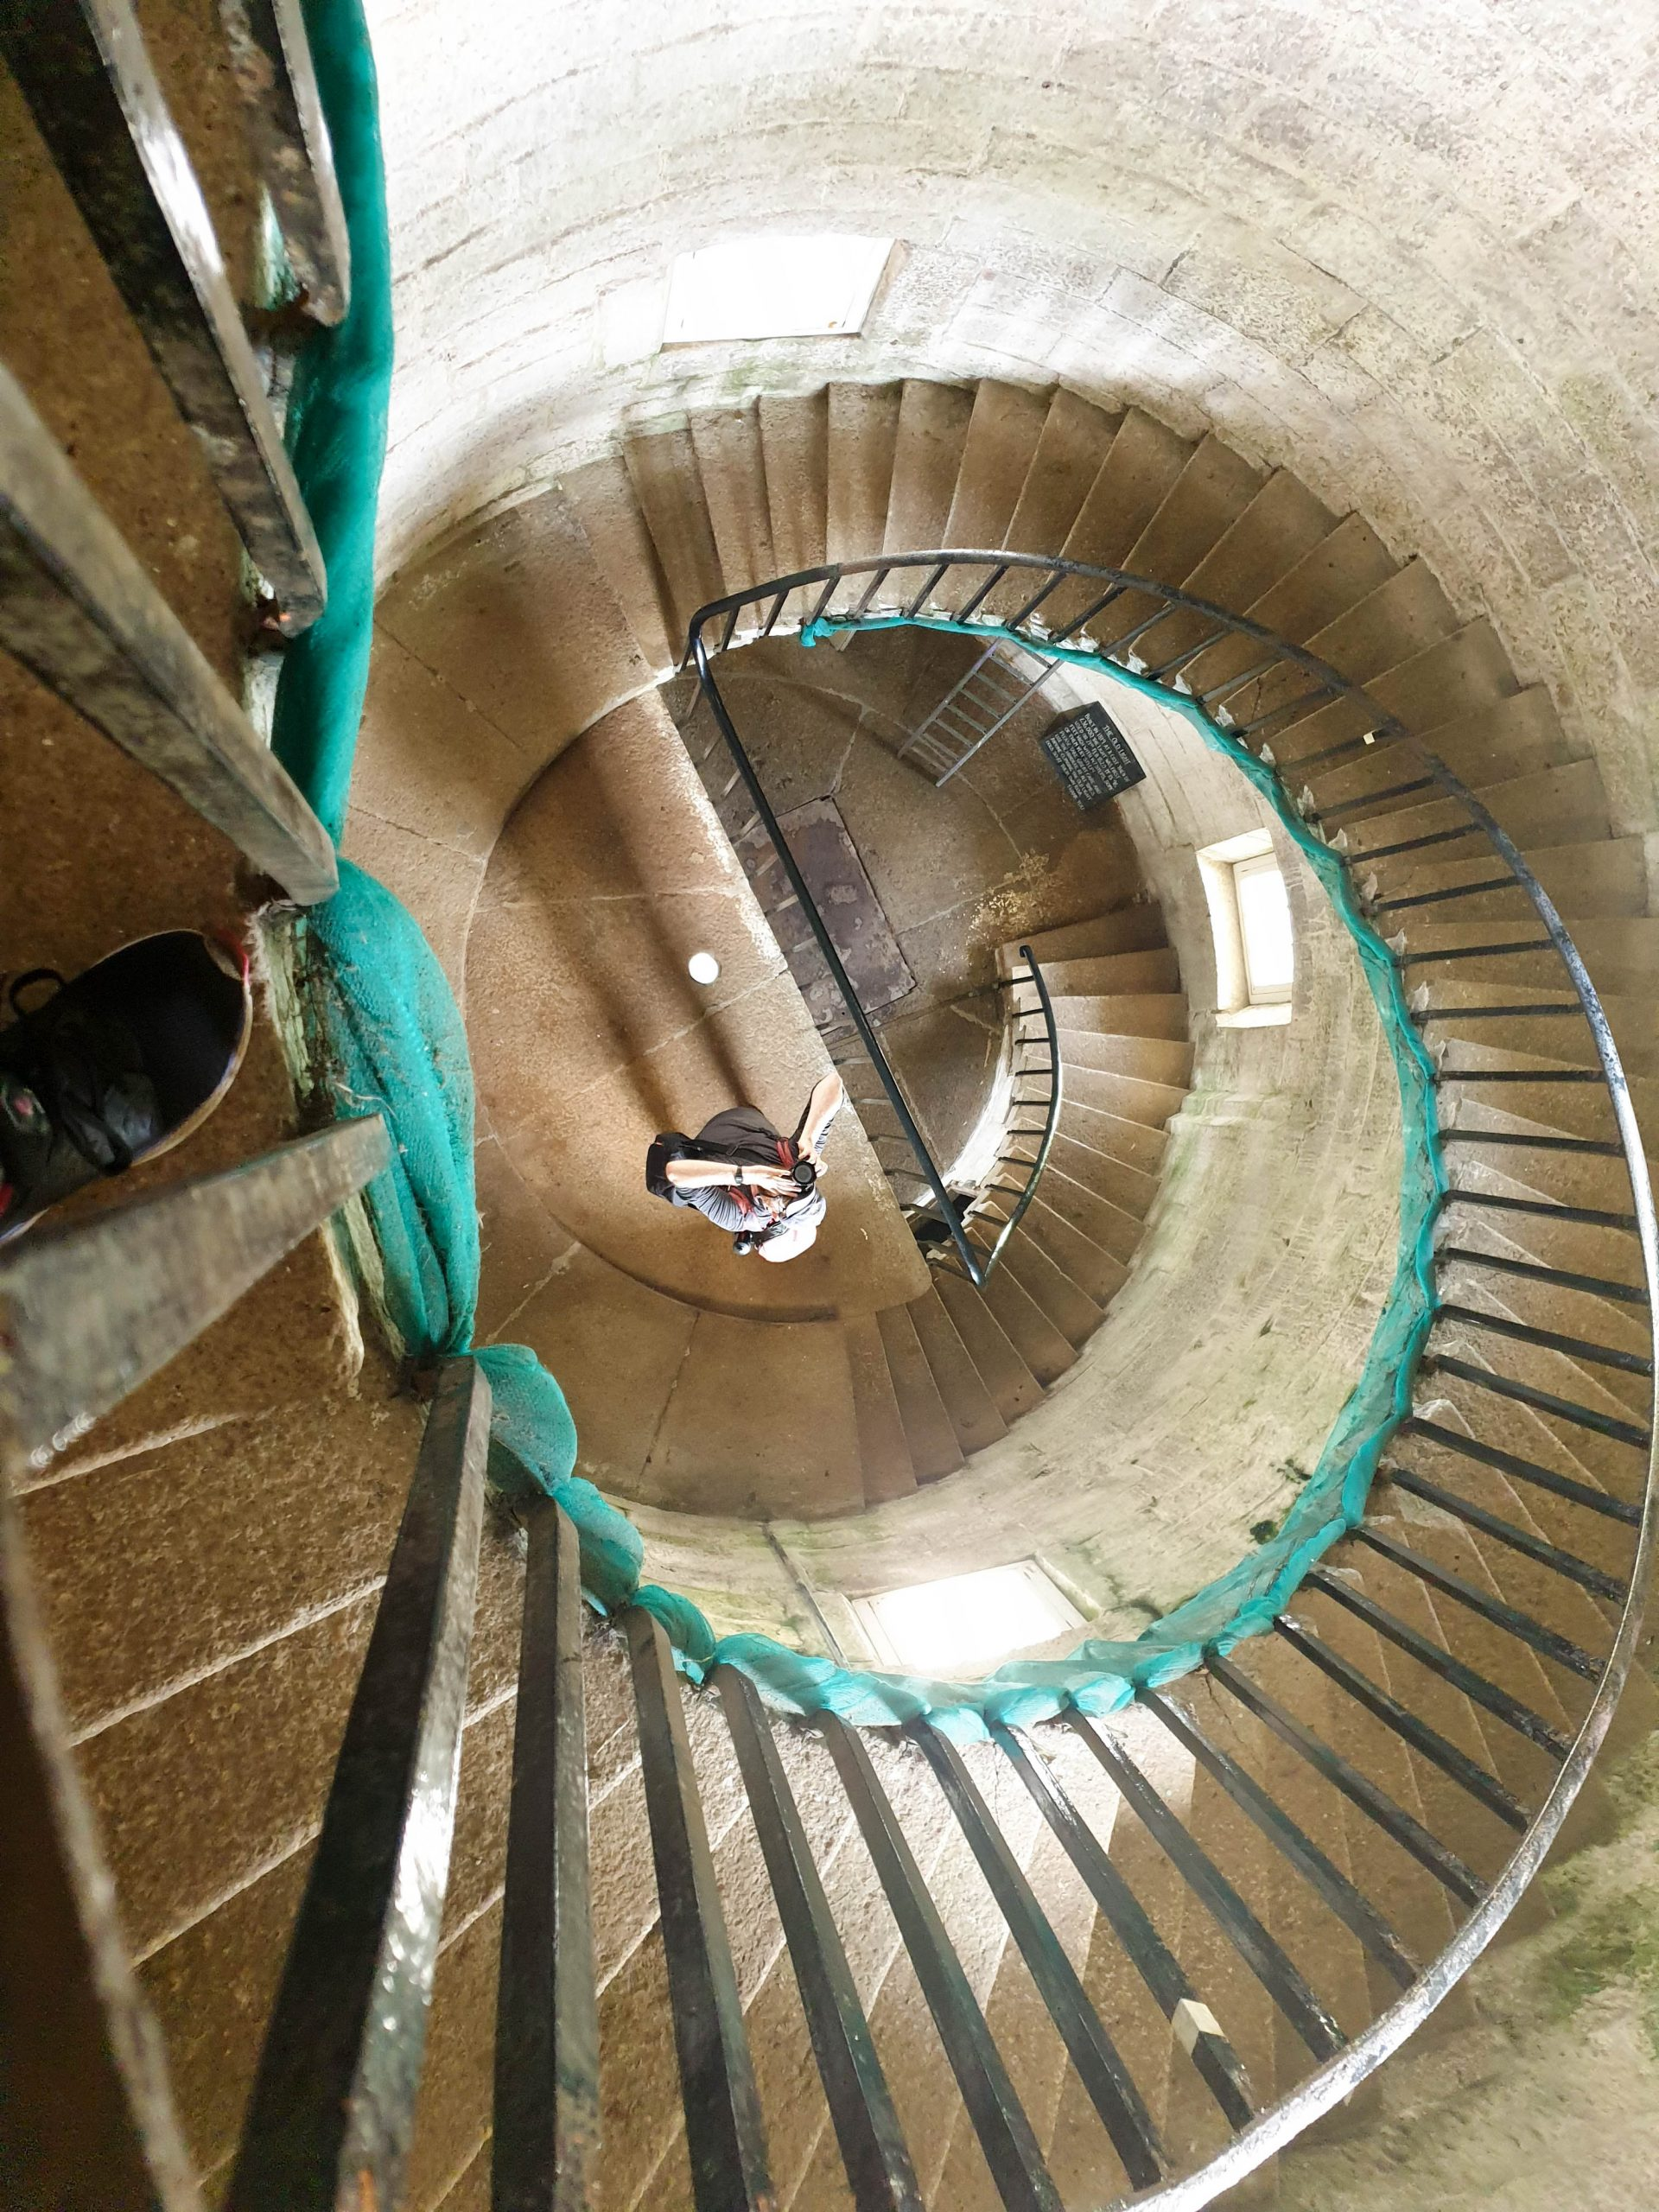 Spiral staircase in the Lighthouse in Lundy Island, Devon